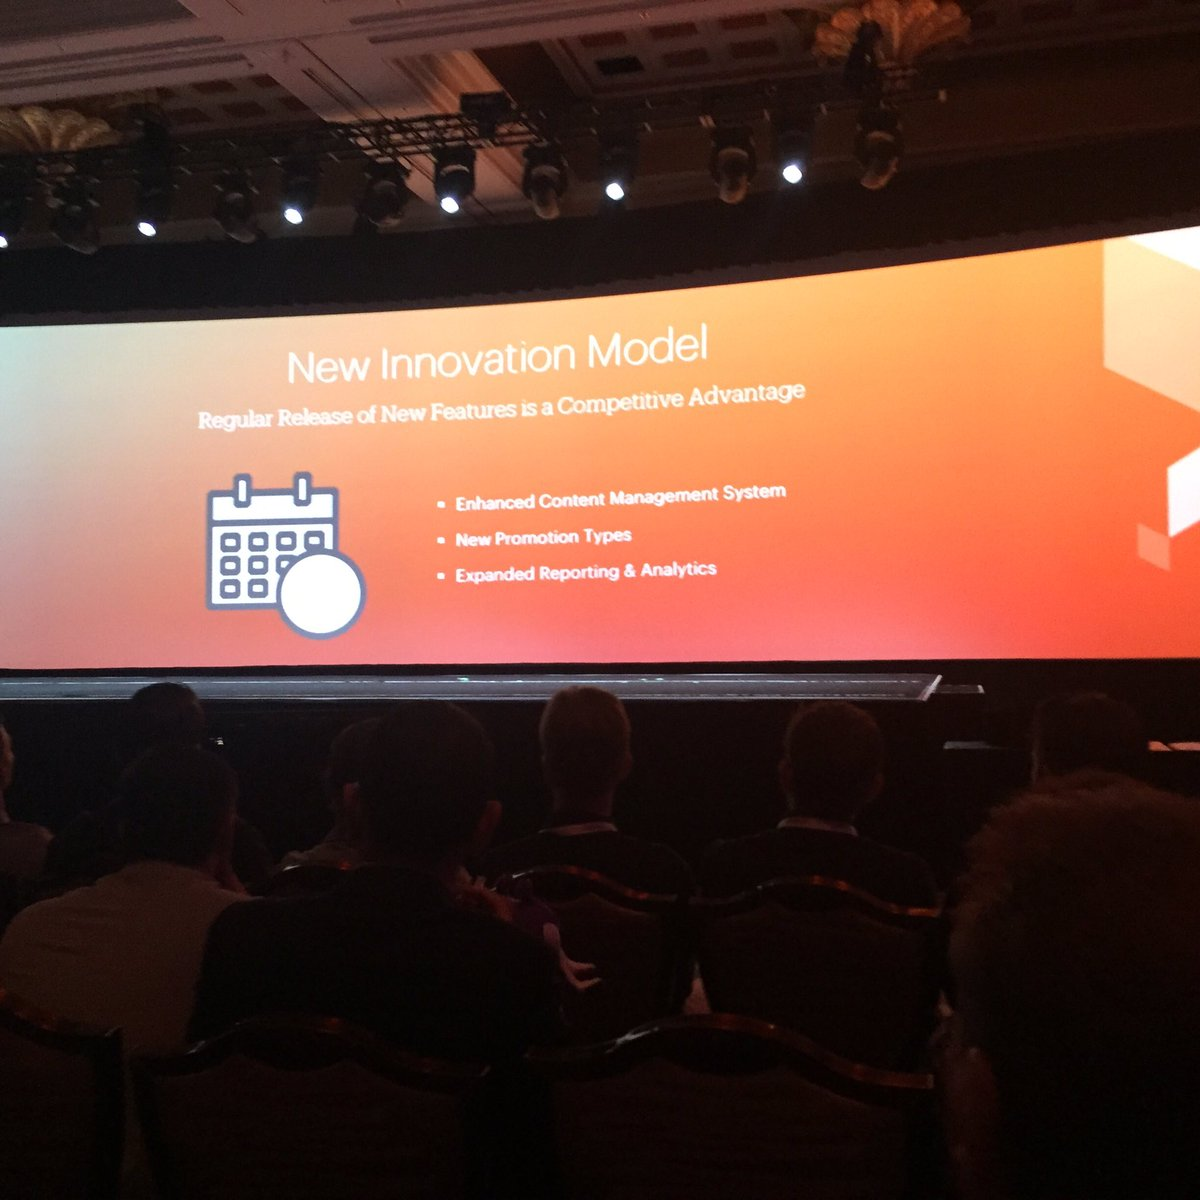 jaalcant: New innovation model #MagentoImagine https://t.co/yyJybZYNvZ